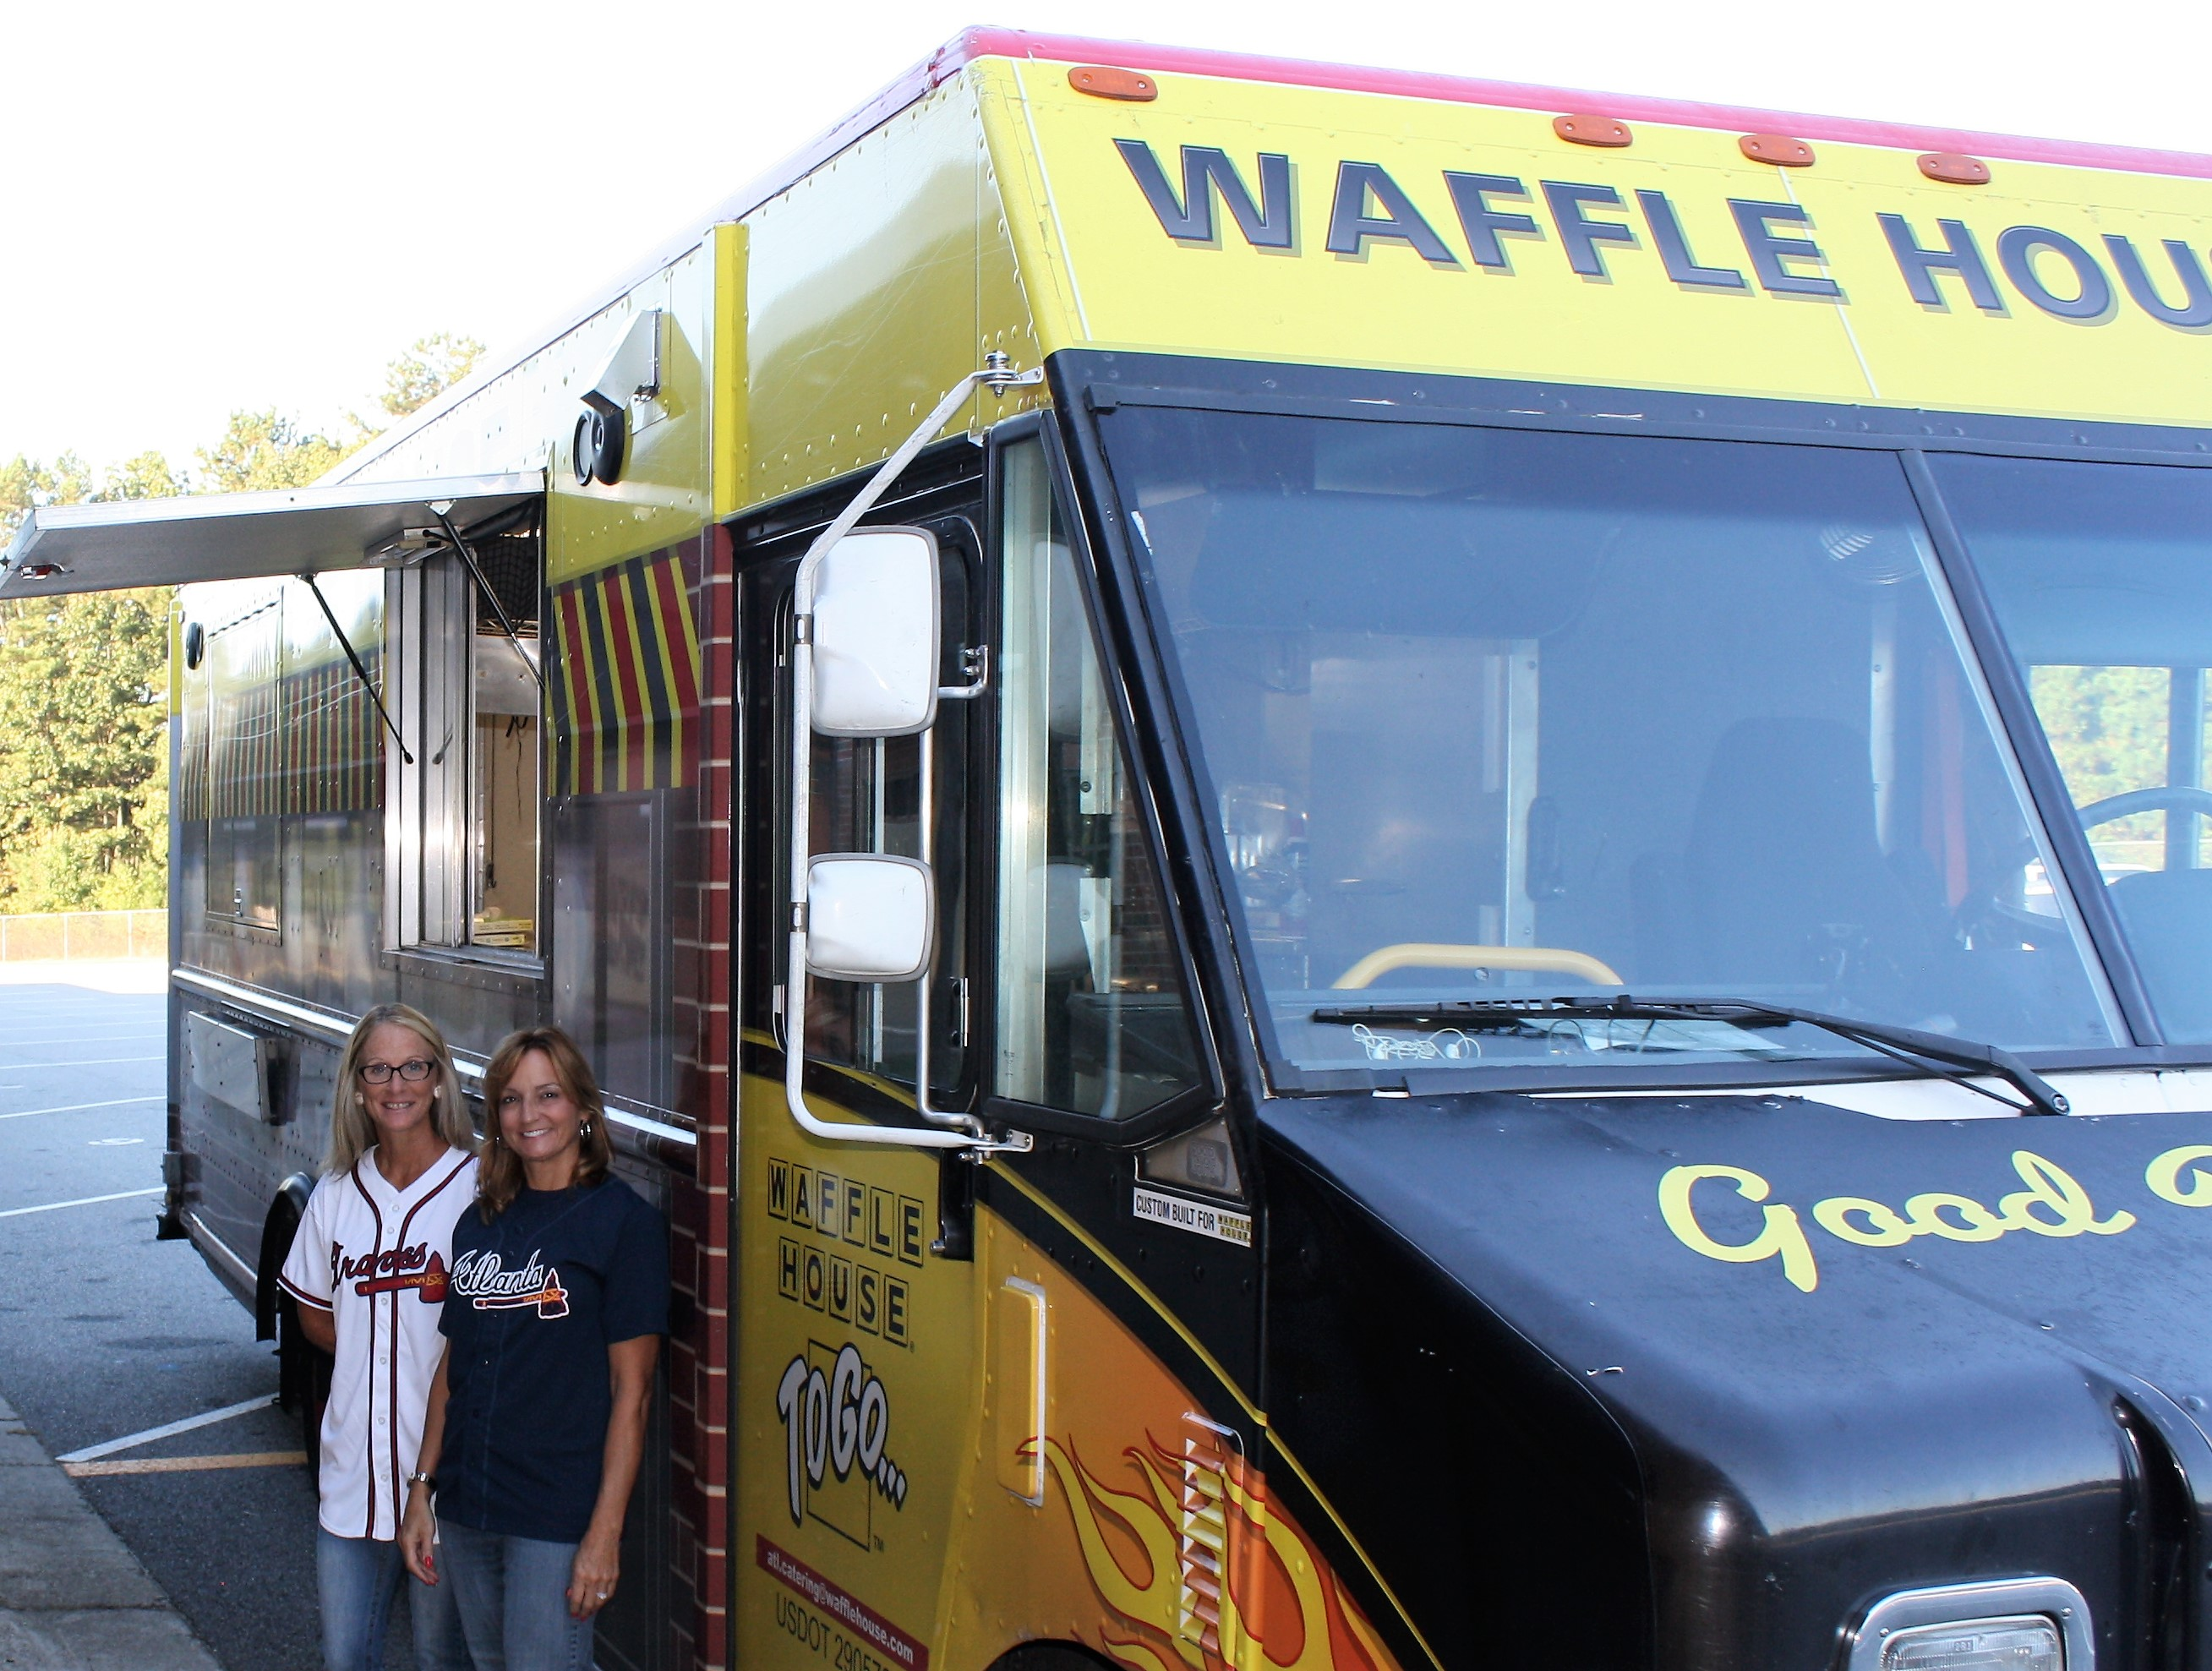 Waffle House Food Truck Visits Ikes Indian Knoll Elementary School